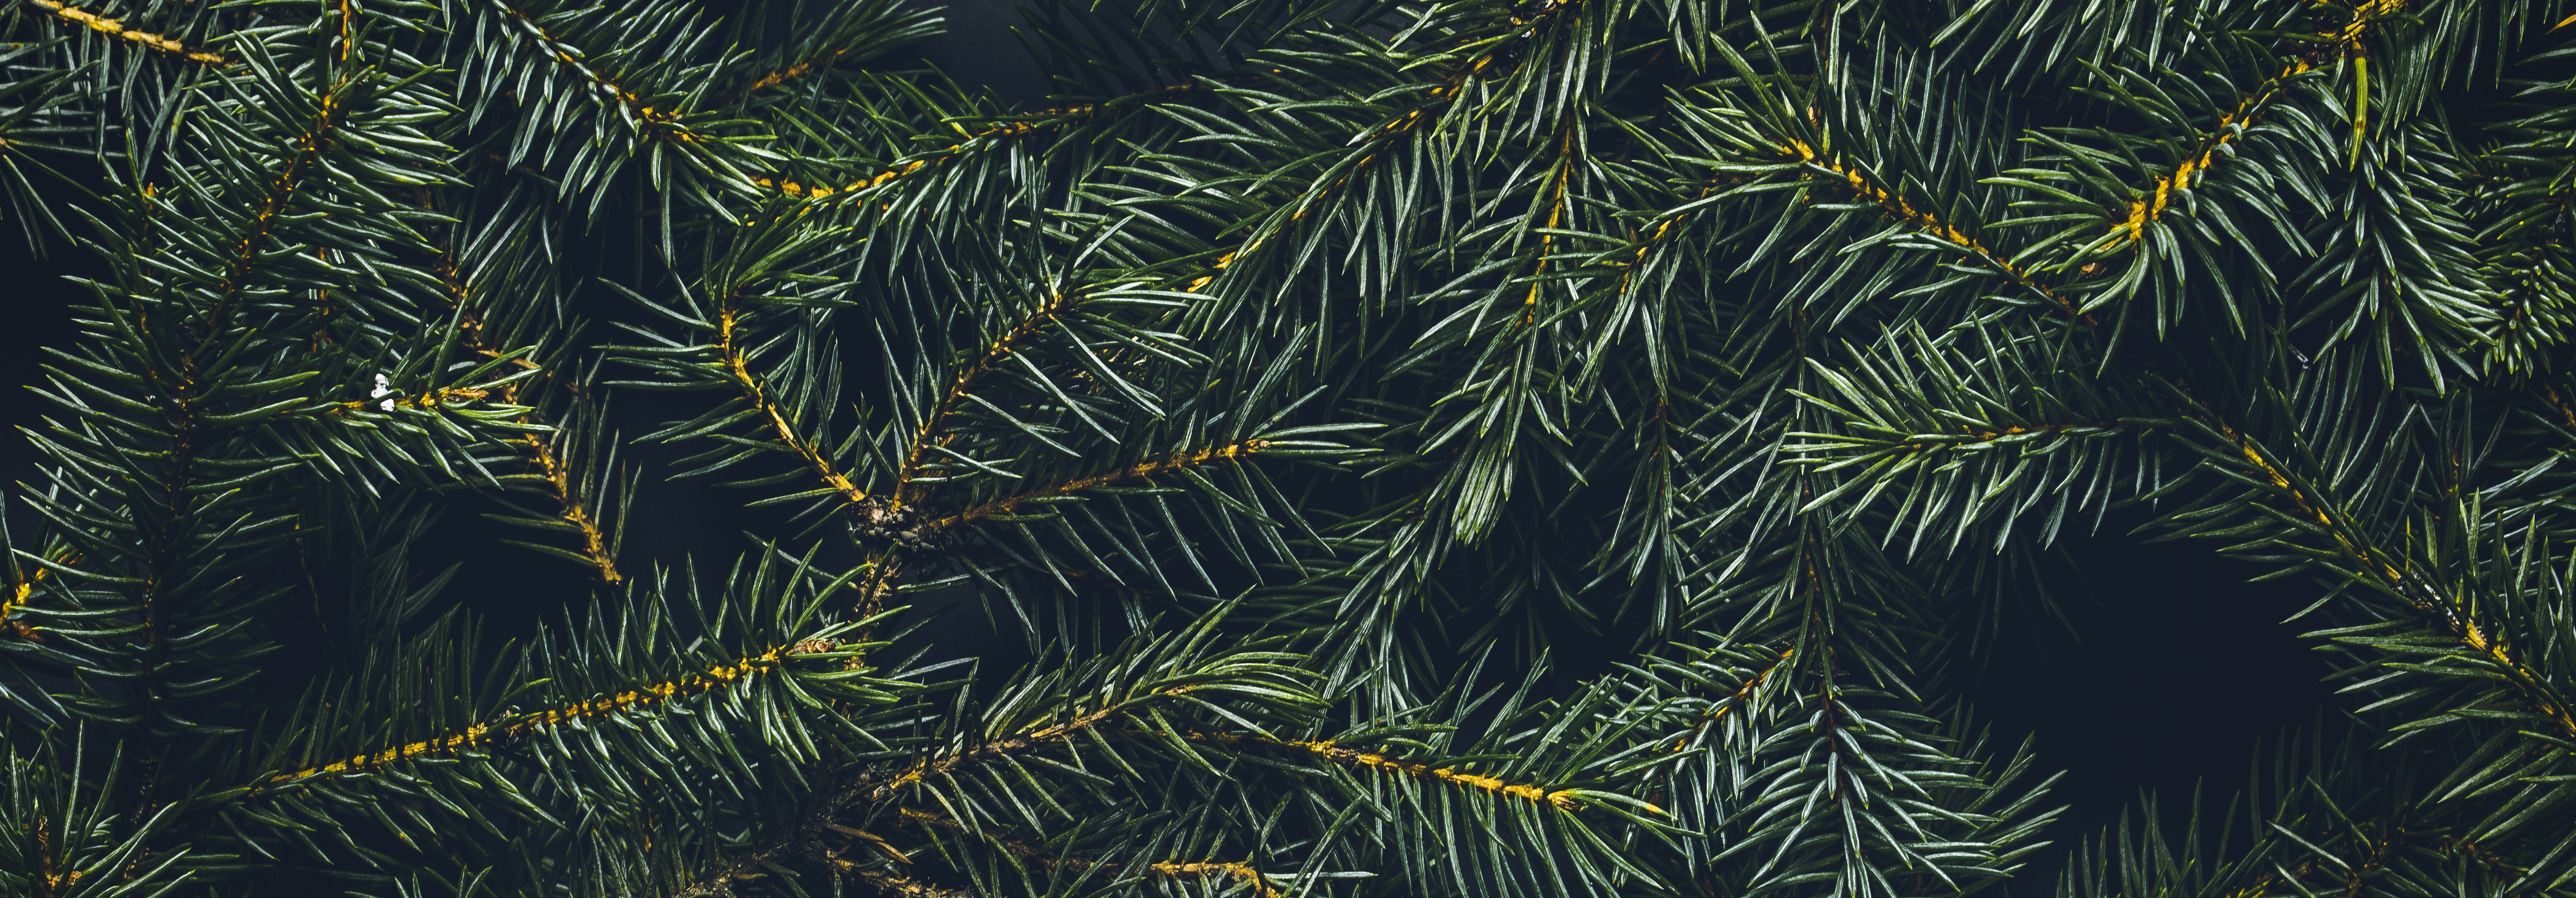 a close up of pine tree needles/branches on tree